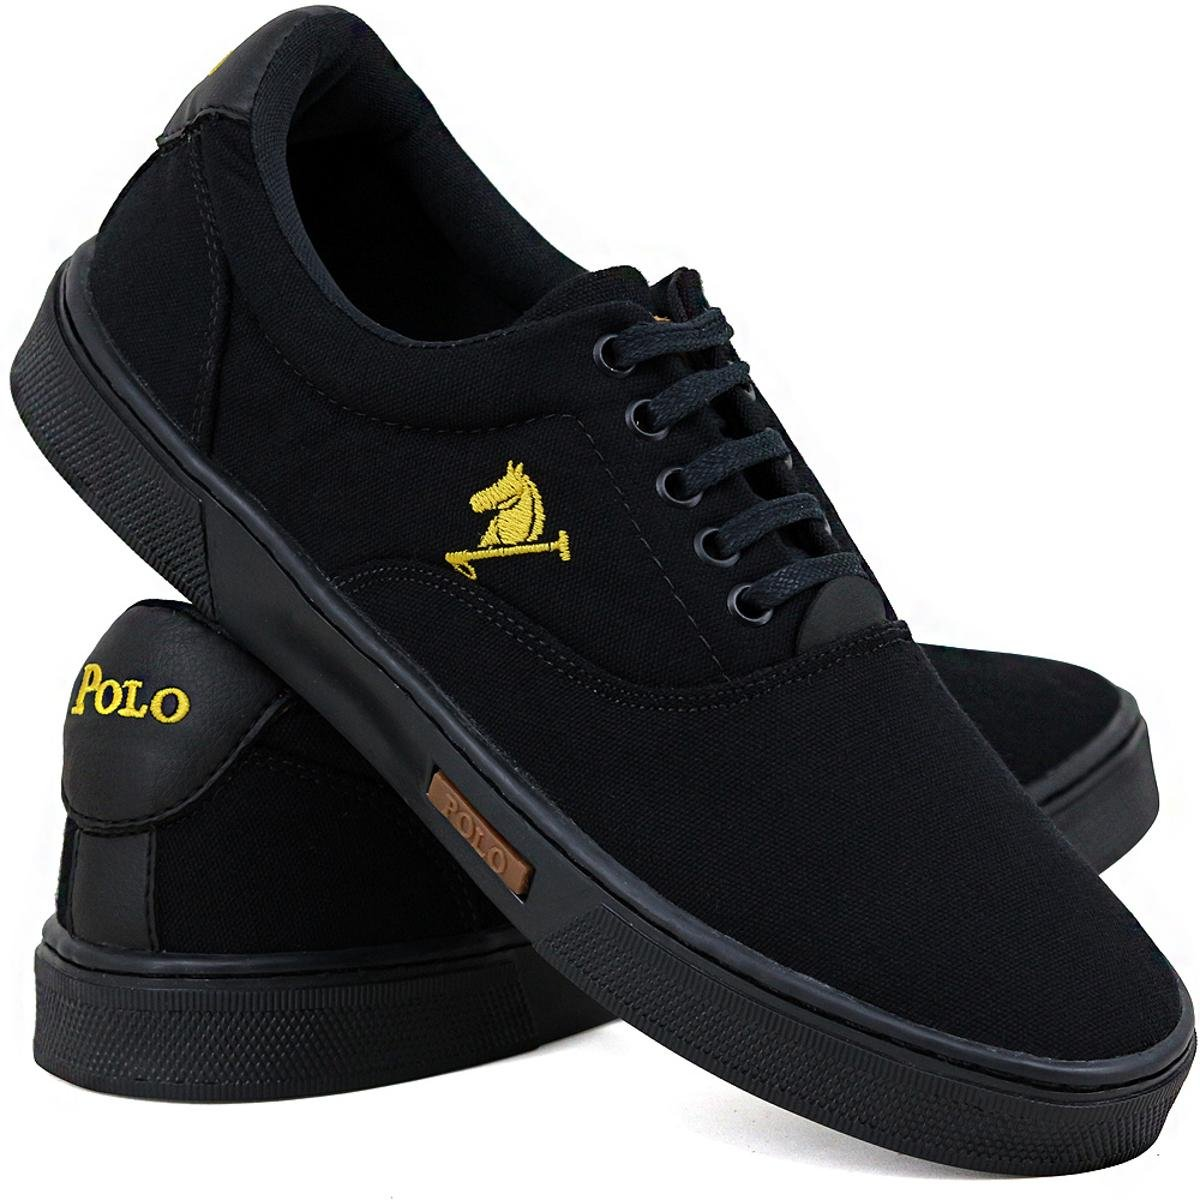 1 e 1 Tênis Joy Preto Polo E Chinelo Kit Chumbo Casual aCwzdqq